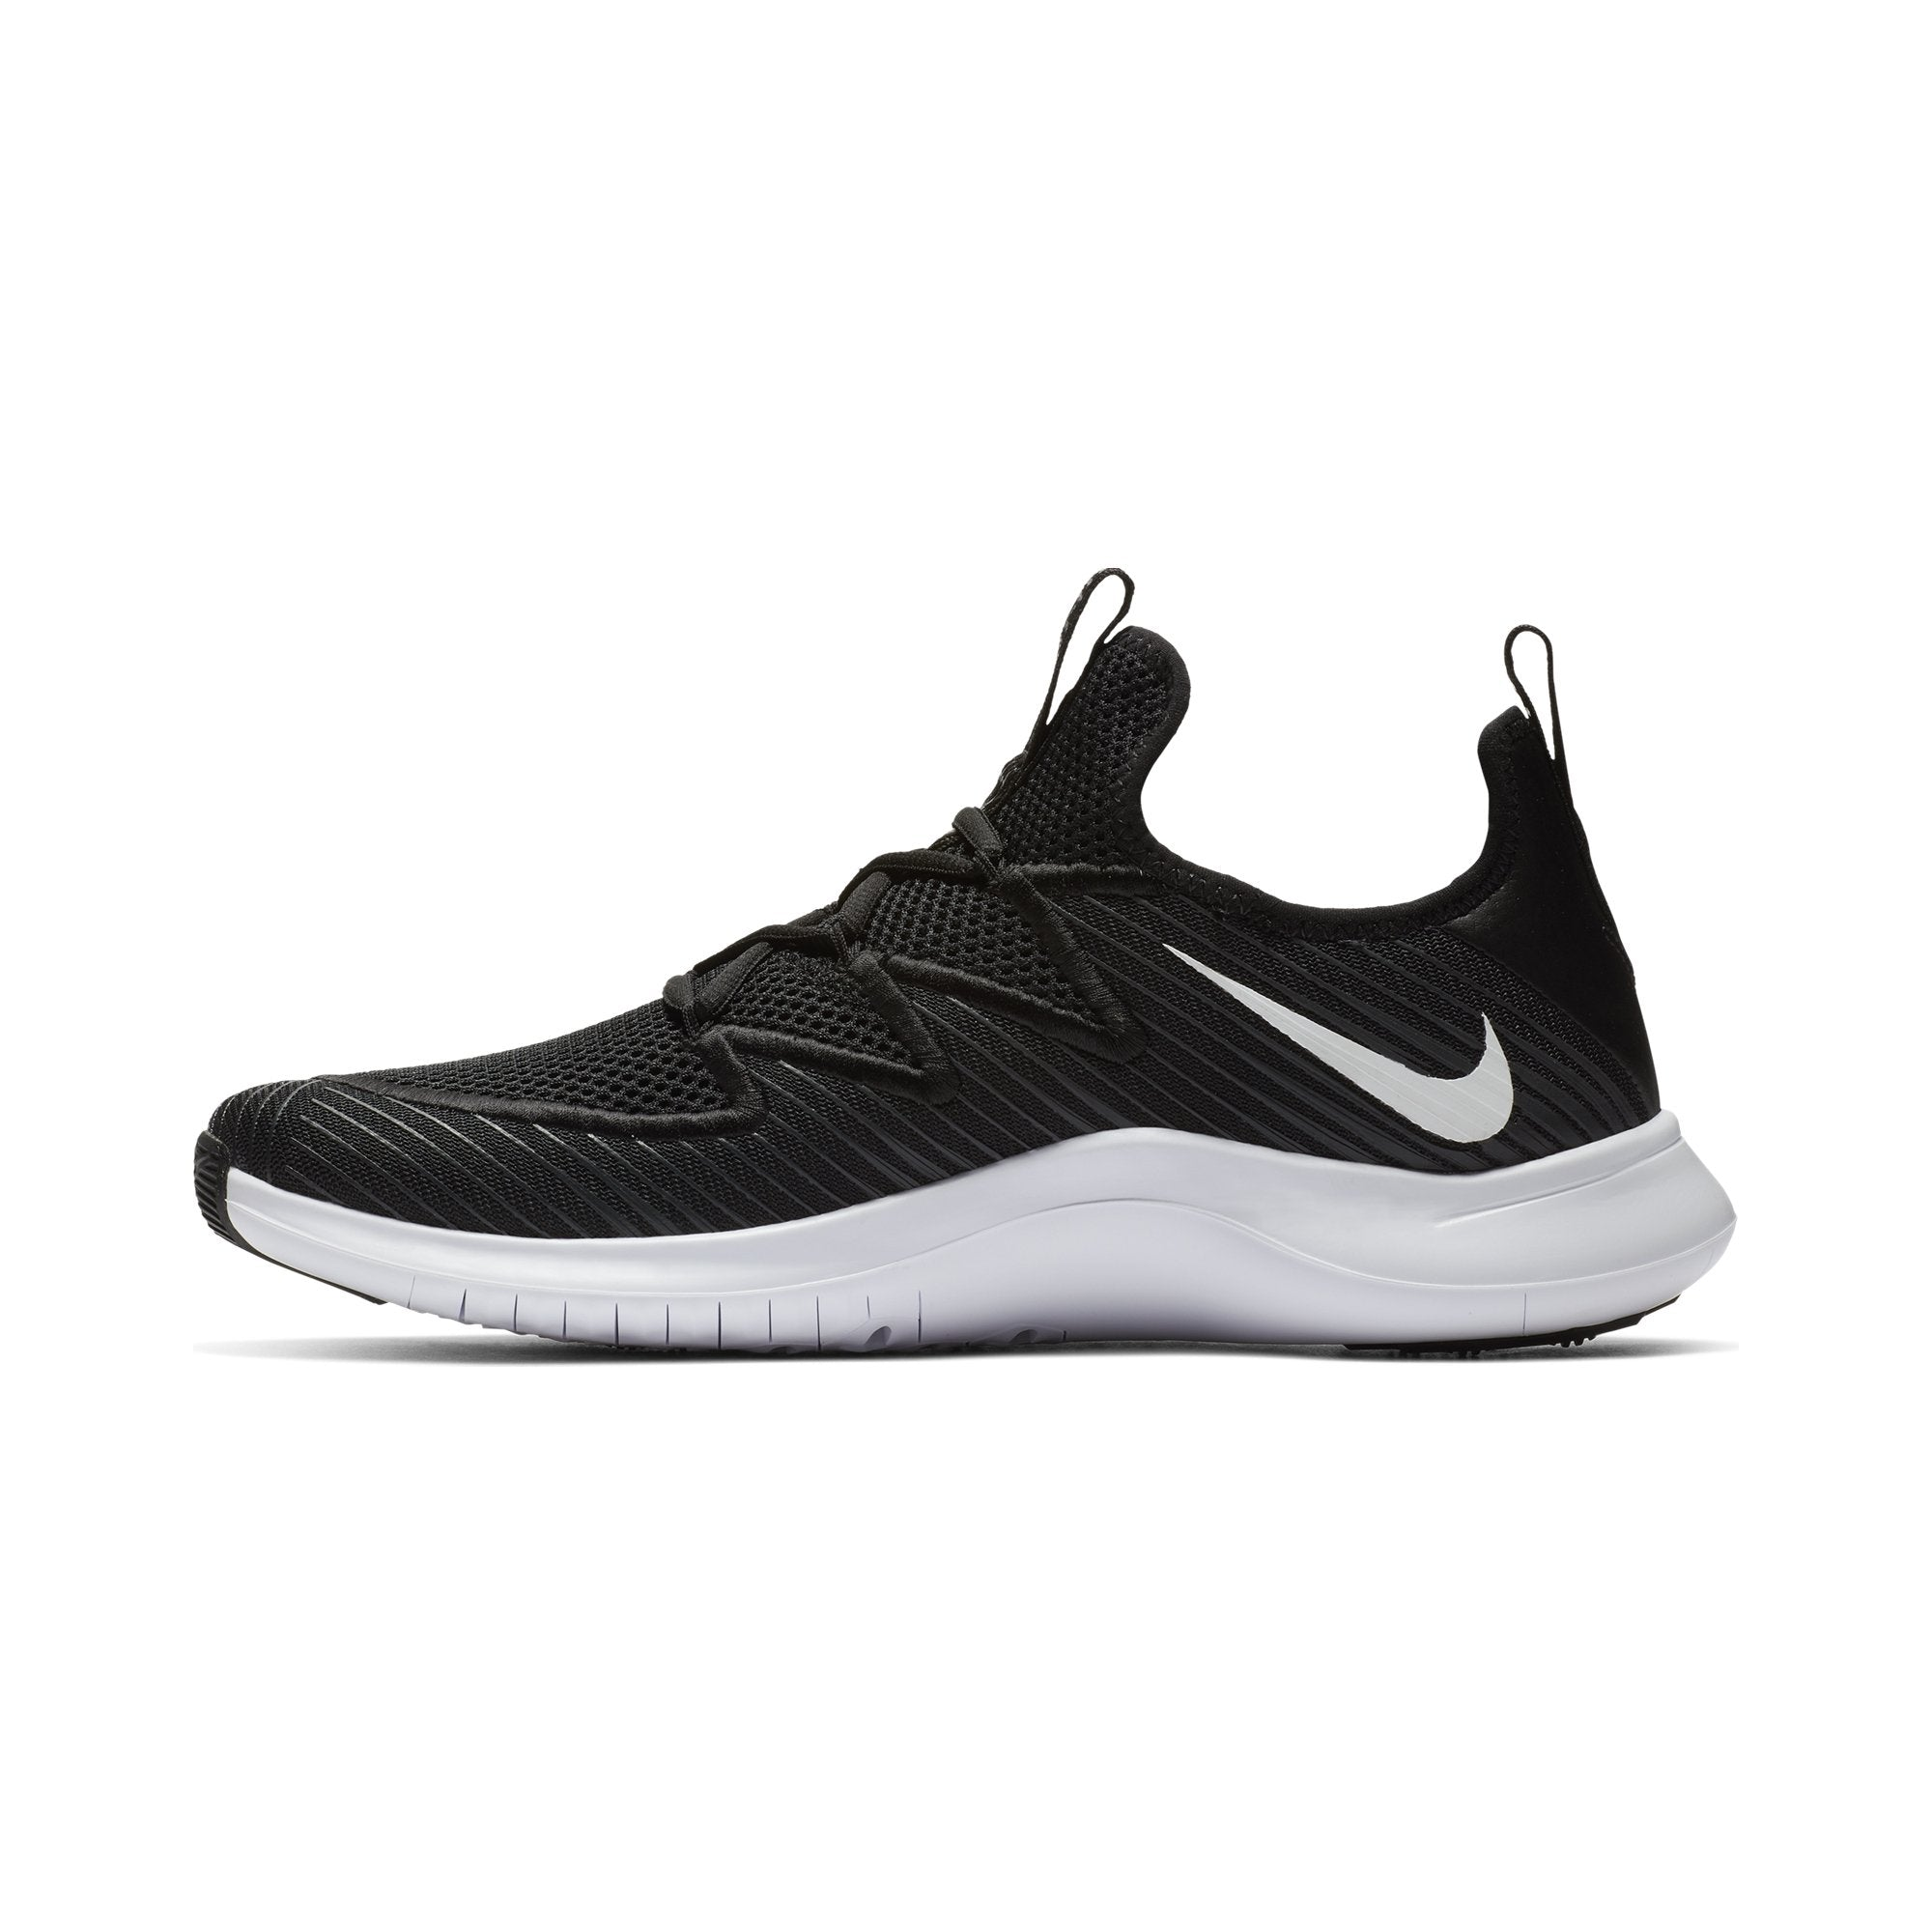 217ad0f9fc75 Buy Nike Men s Free Ultra Training Shoes